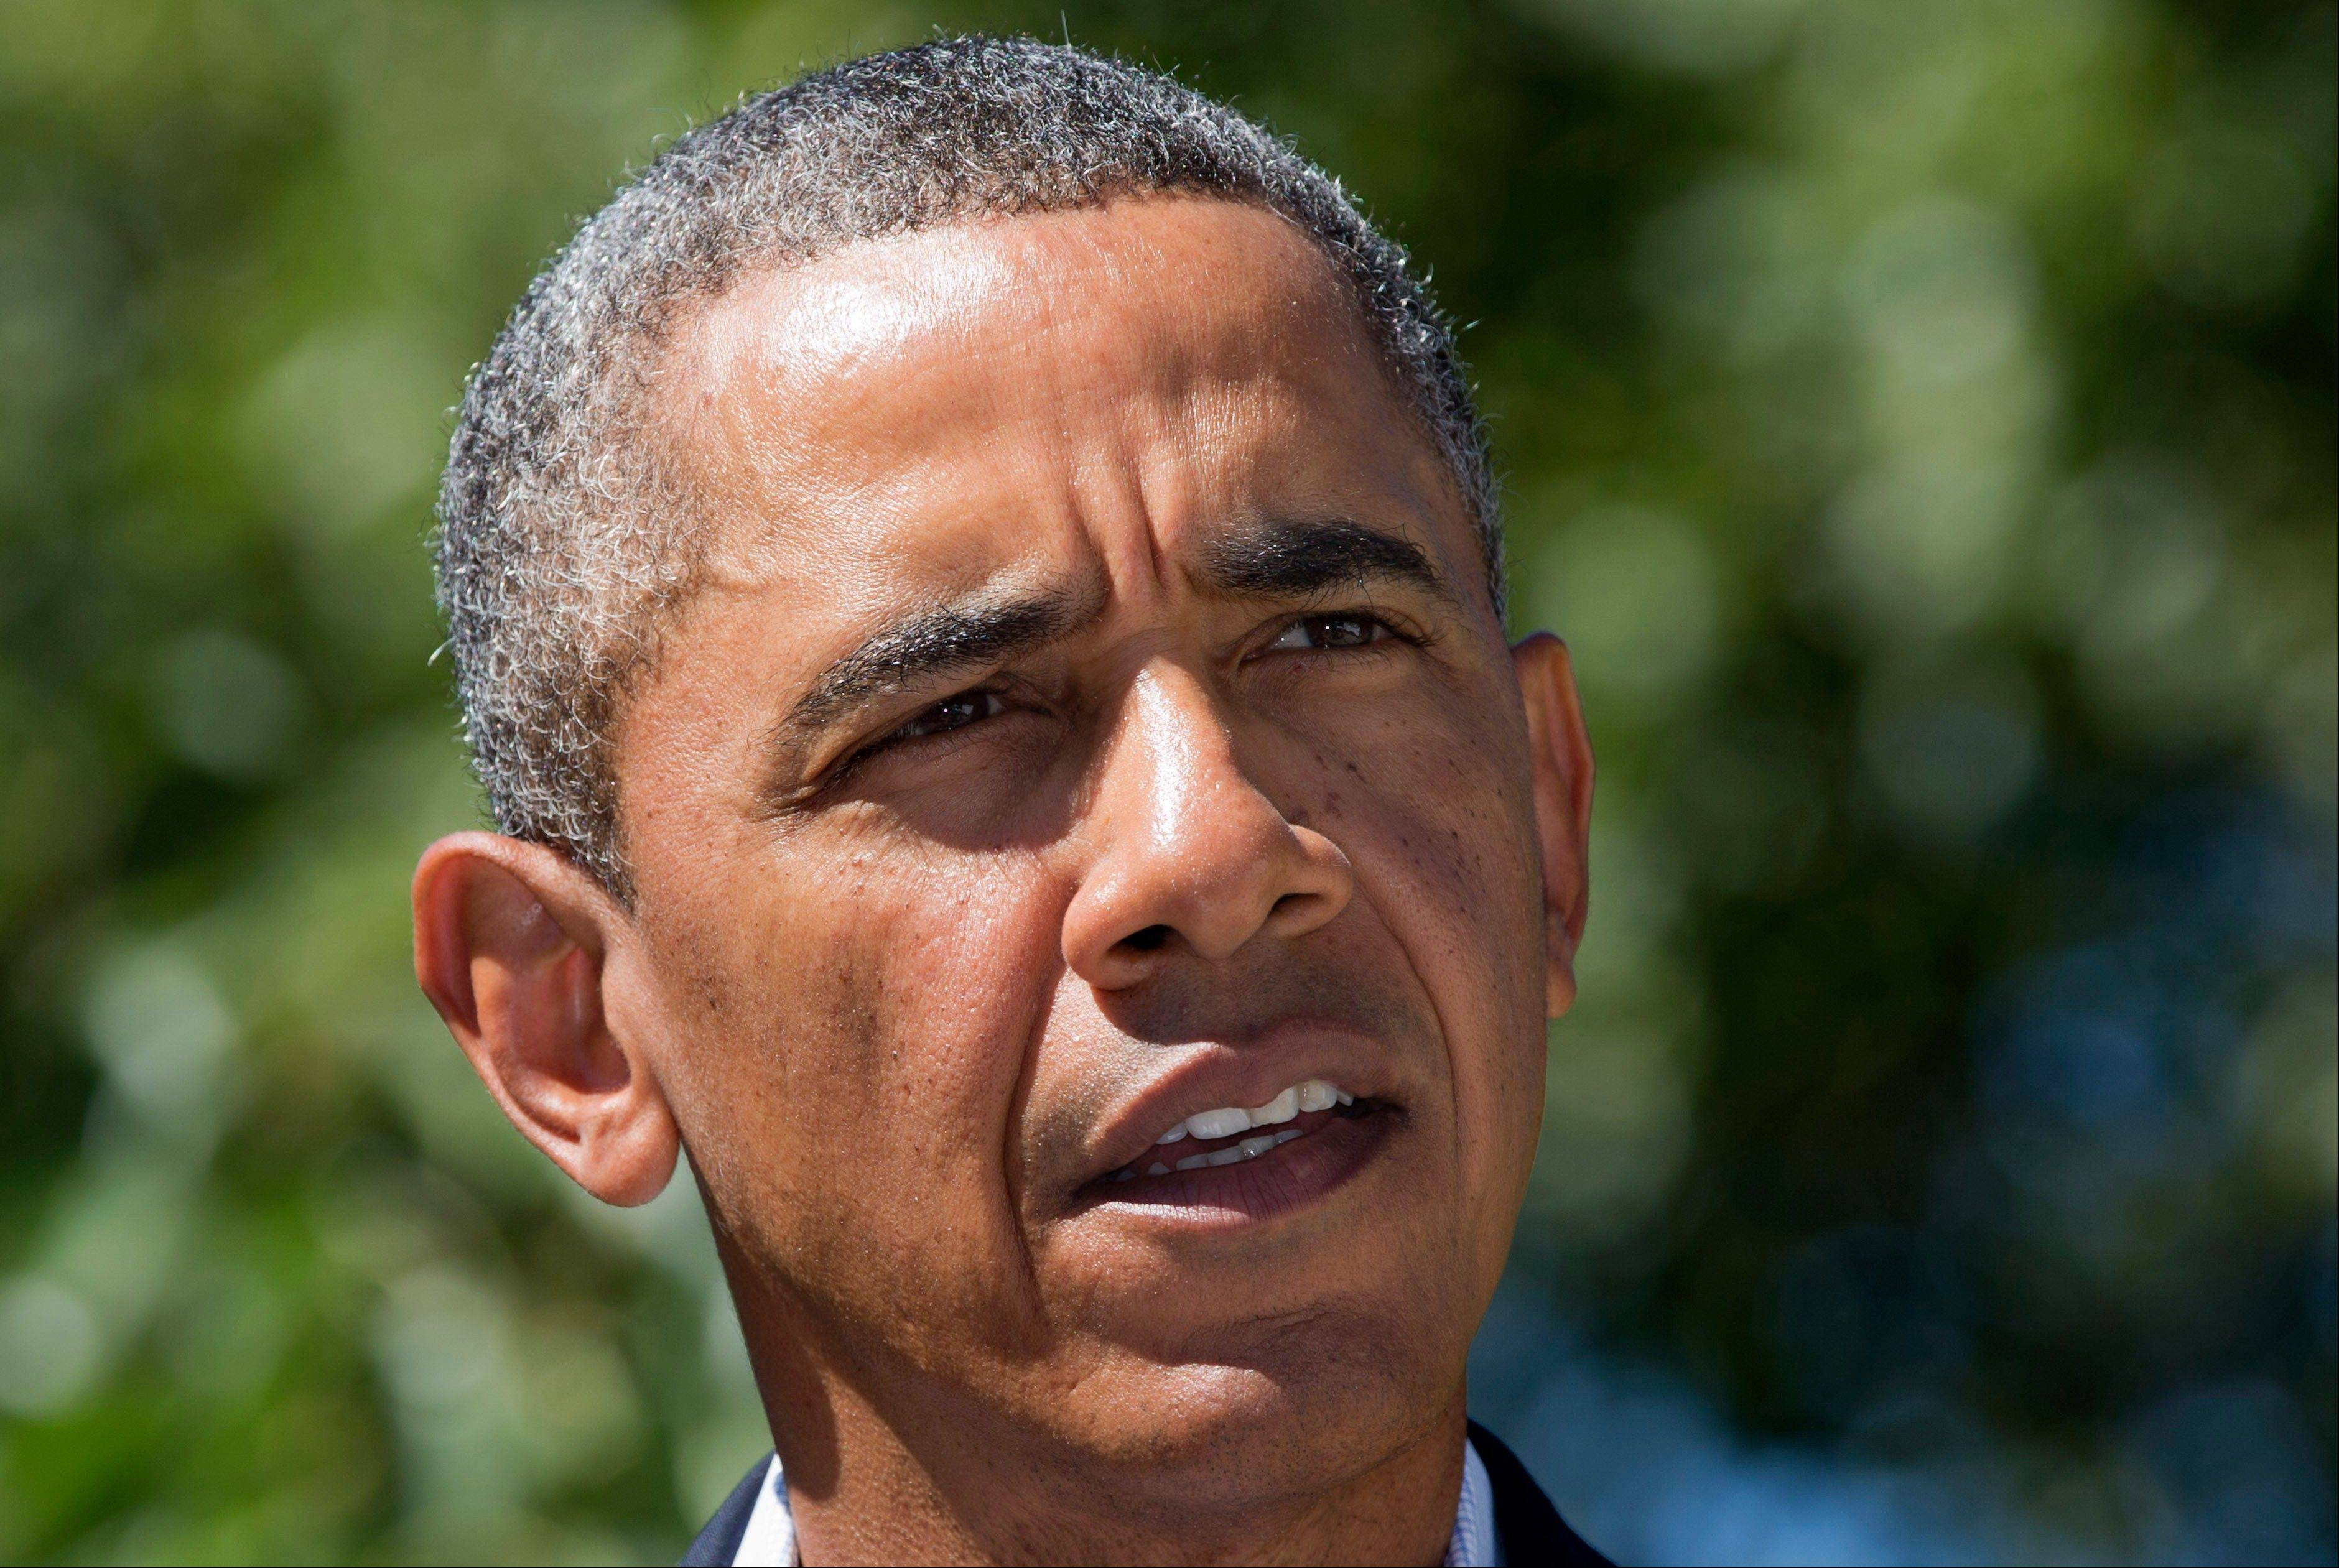 President Barack Obama makes a statement to the media regarding events in Egypt, from his rental vacation home in Chilmark Mass., on the island of Martha's Vineyard, Thursday, Aug. 15, 2013. The president announced that the US is canceling joint military exercise with Egypt amid violence.